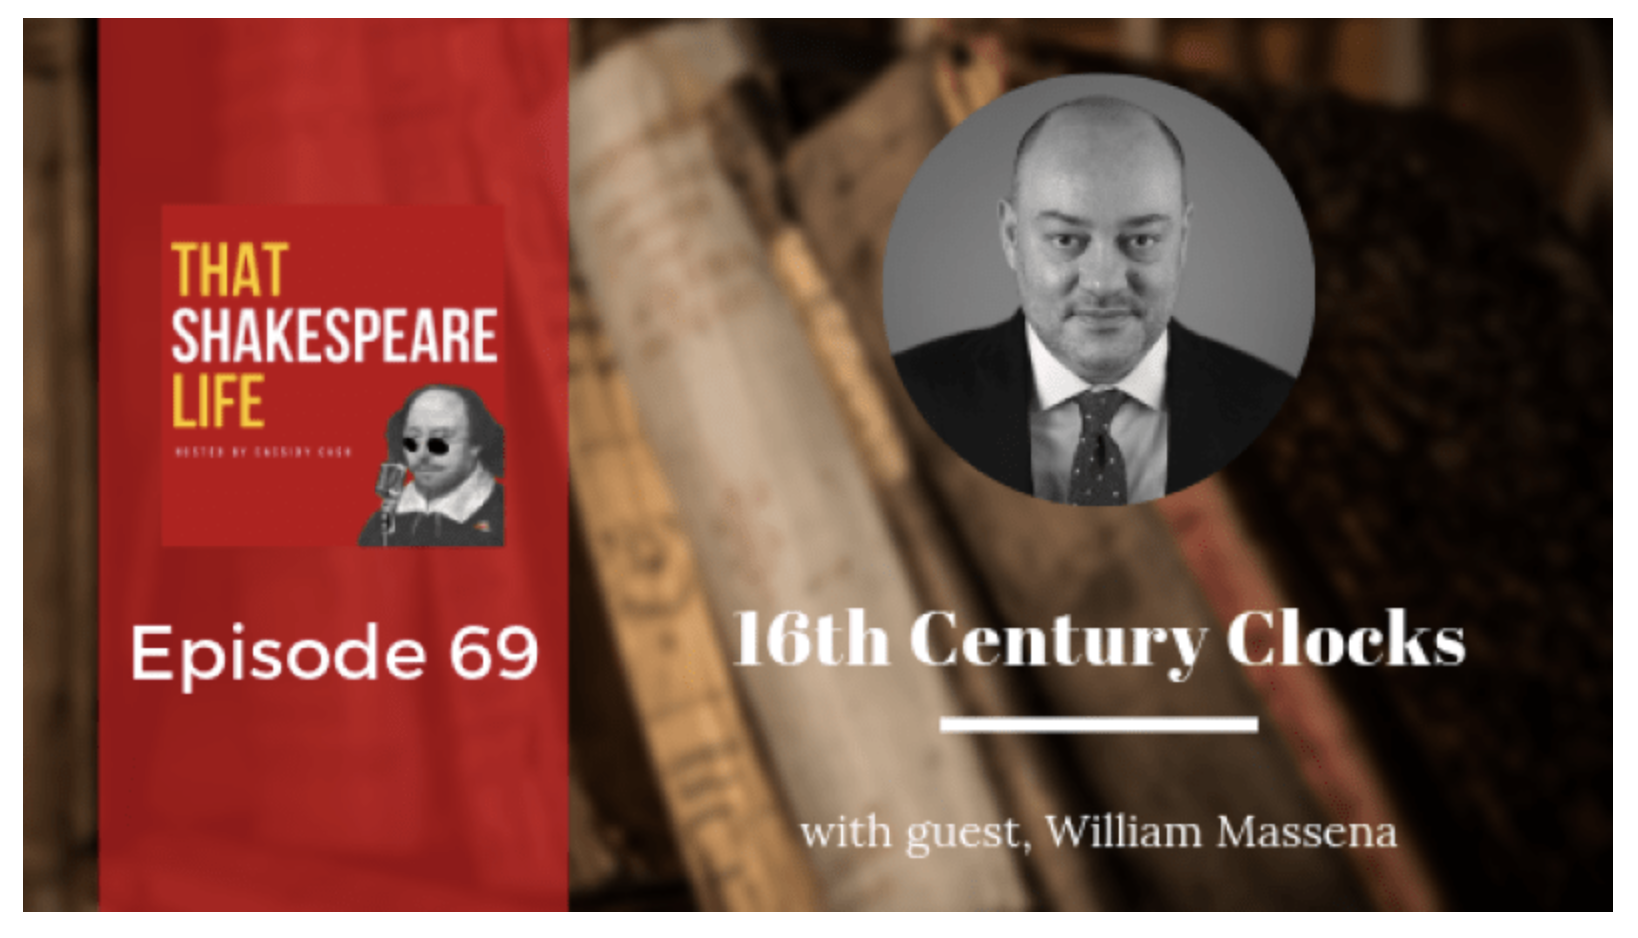 Episode 69: Interview with William Massena on 16th Century Clocks (That Shakespeare Life)